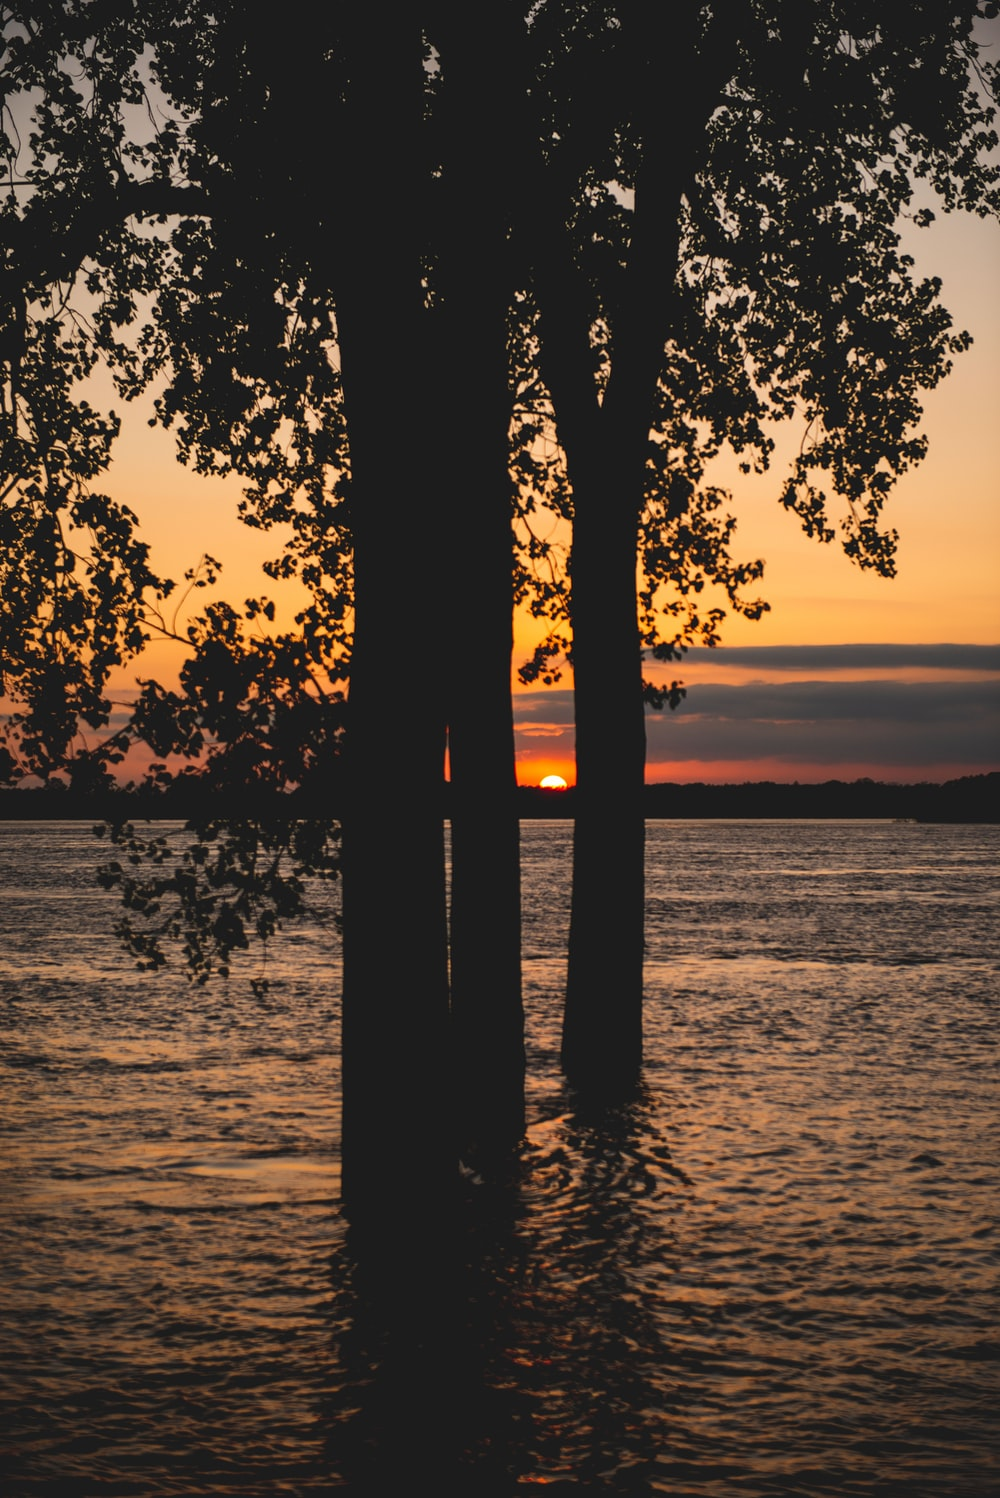 silhouette of trees on sea shore during sunset